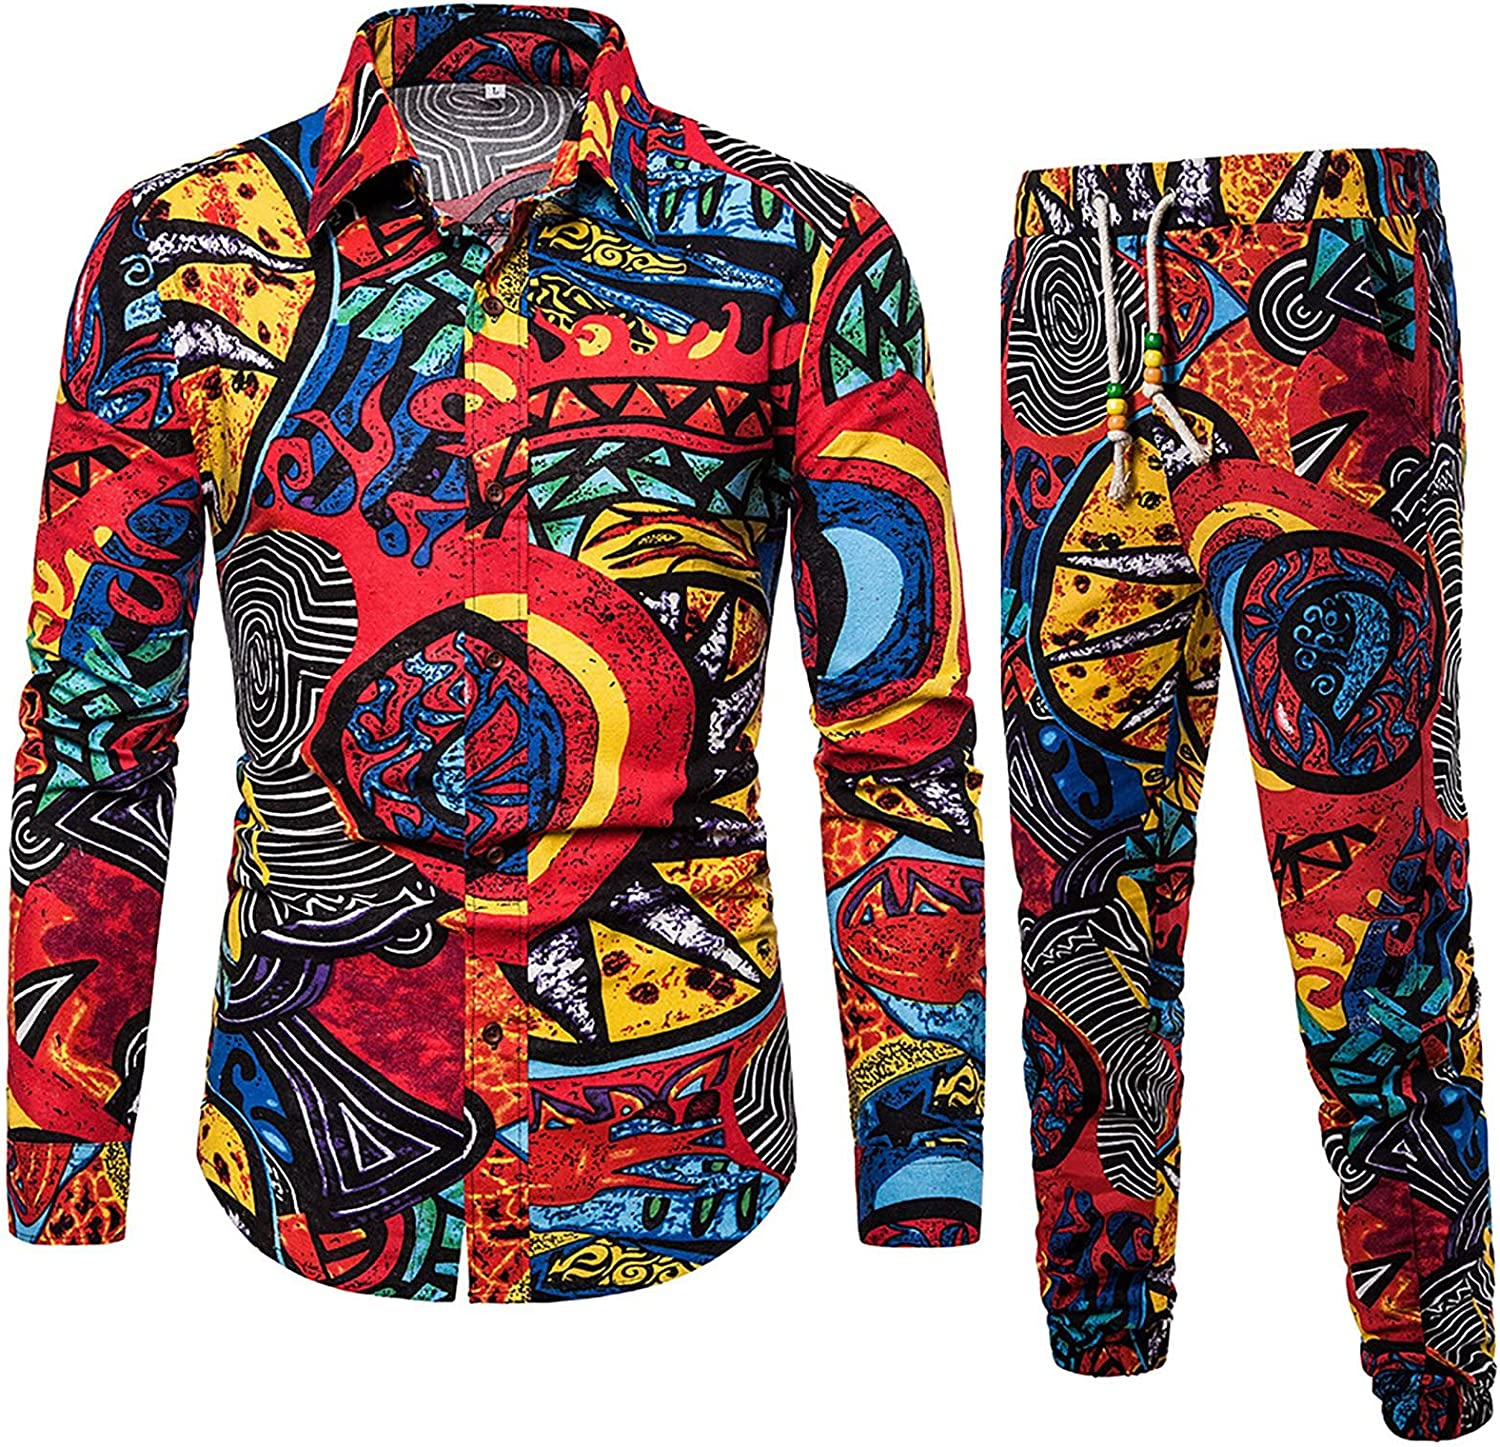 raillery Men's Casual Tracksuit Ethnic service Printed and Style Cotton San Francisco Mall